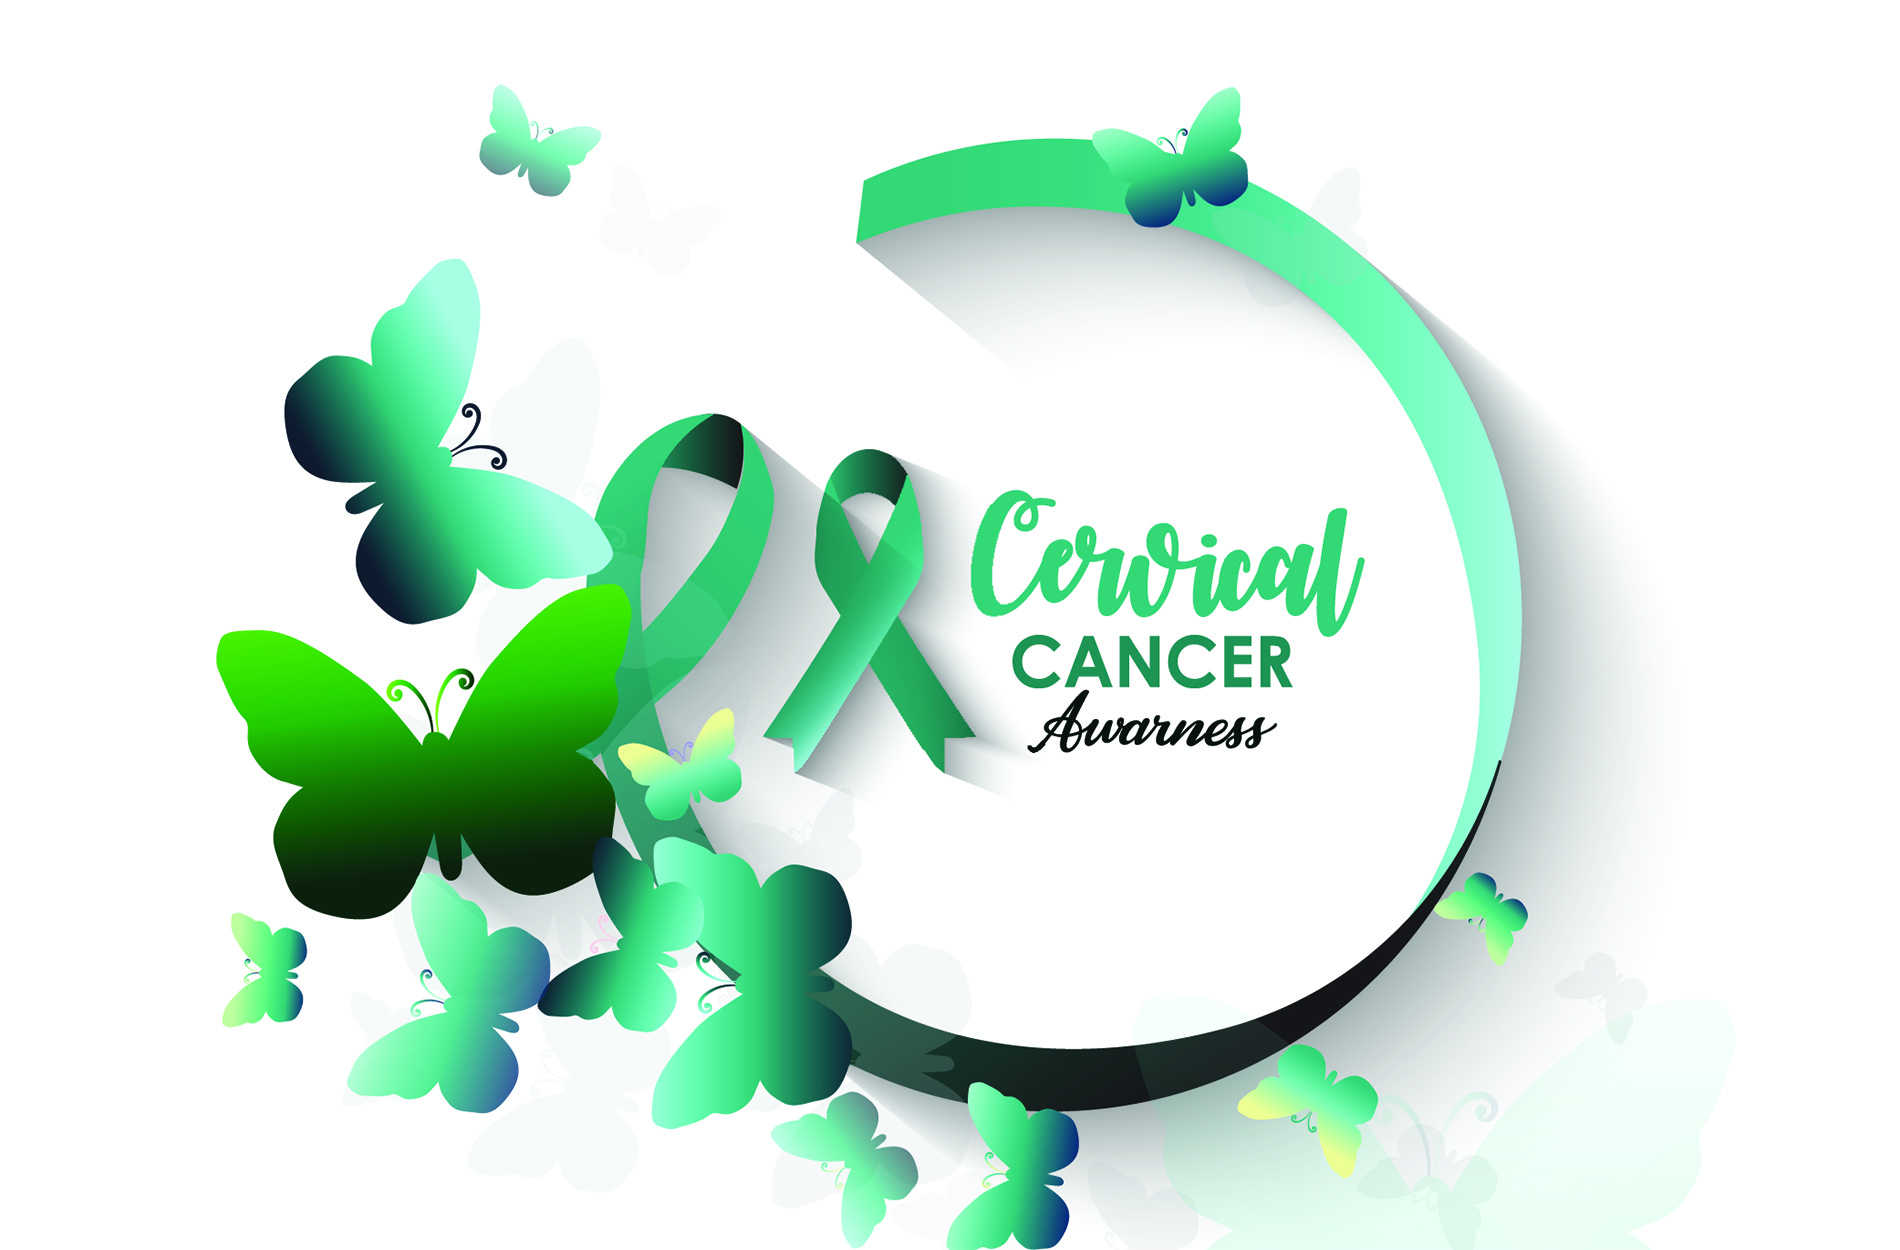 Graphic for Cervical Cancer Awareness with blue butterflies